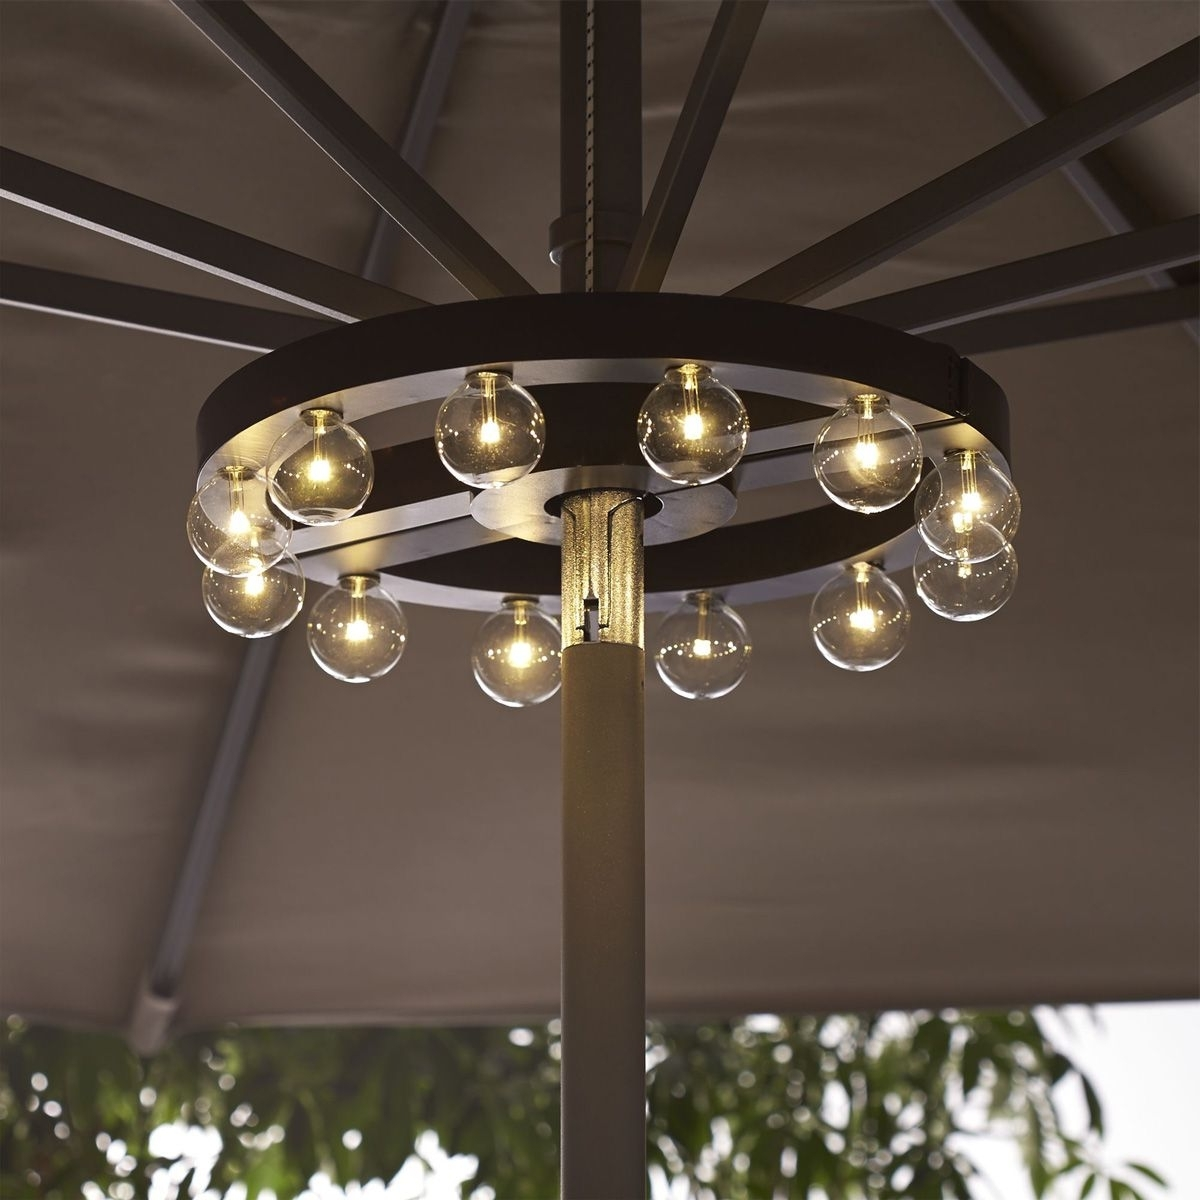 Get Outside For The Summer With Favorite Patio Umbrellas With Lights (View 3 of 20)